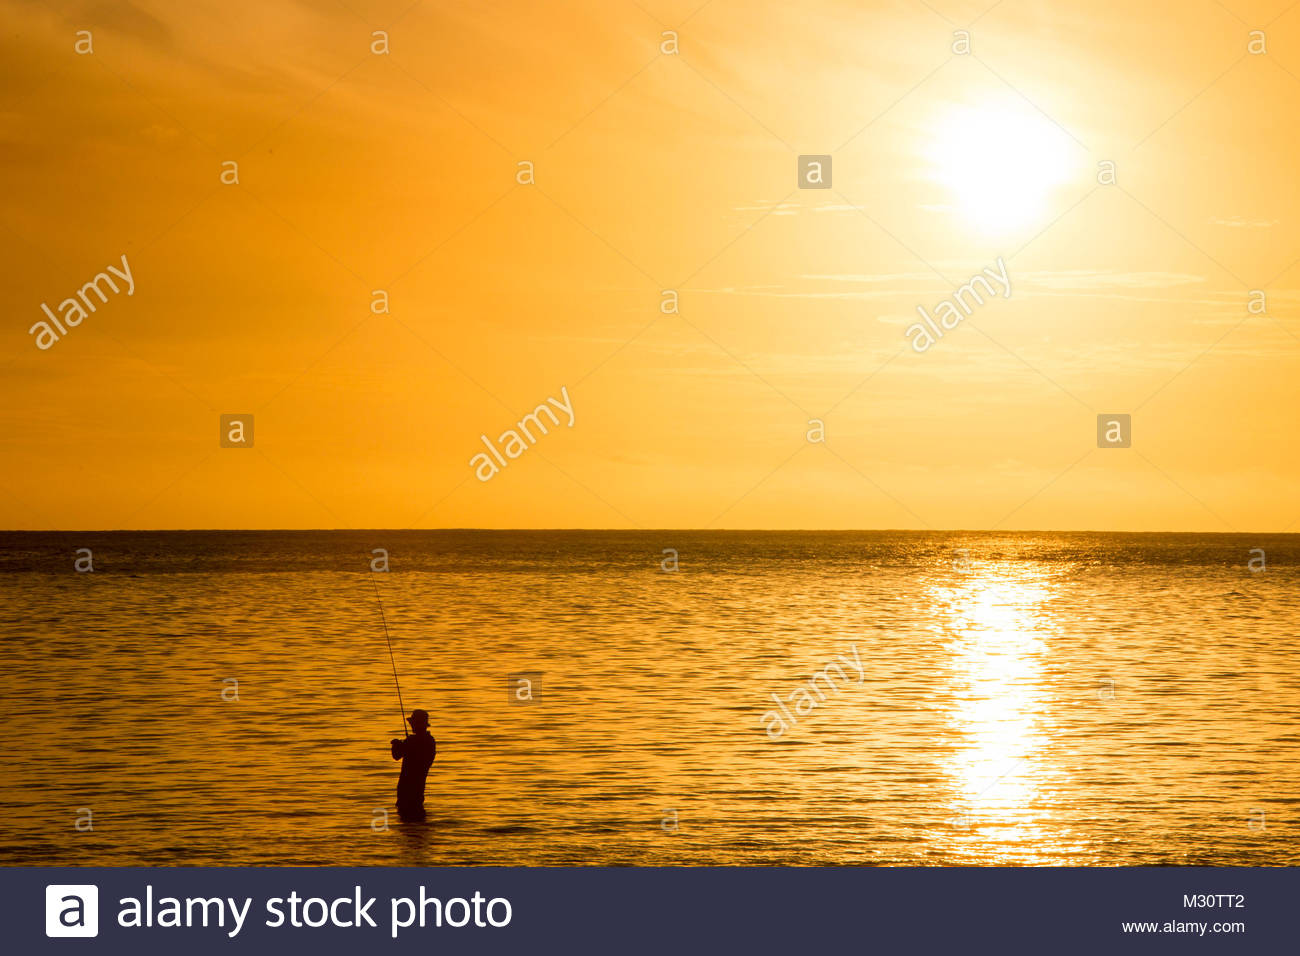 Traveling through the Islands of Efate, Tanna, Pentecost and Malekula in the South Pacific Islands of Vanuatu - Stock Image